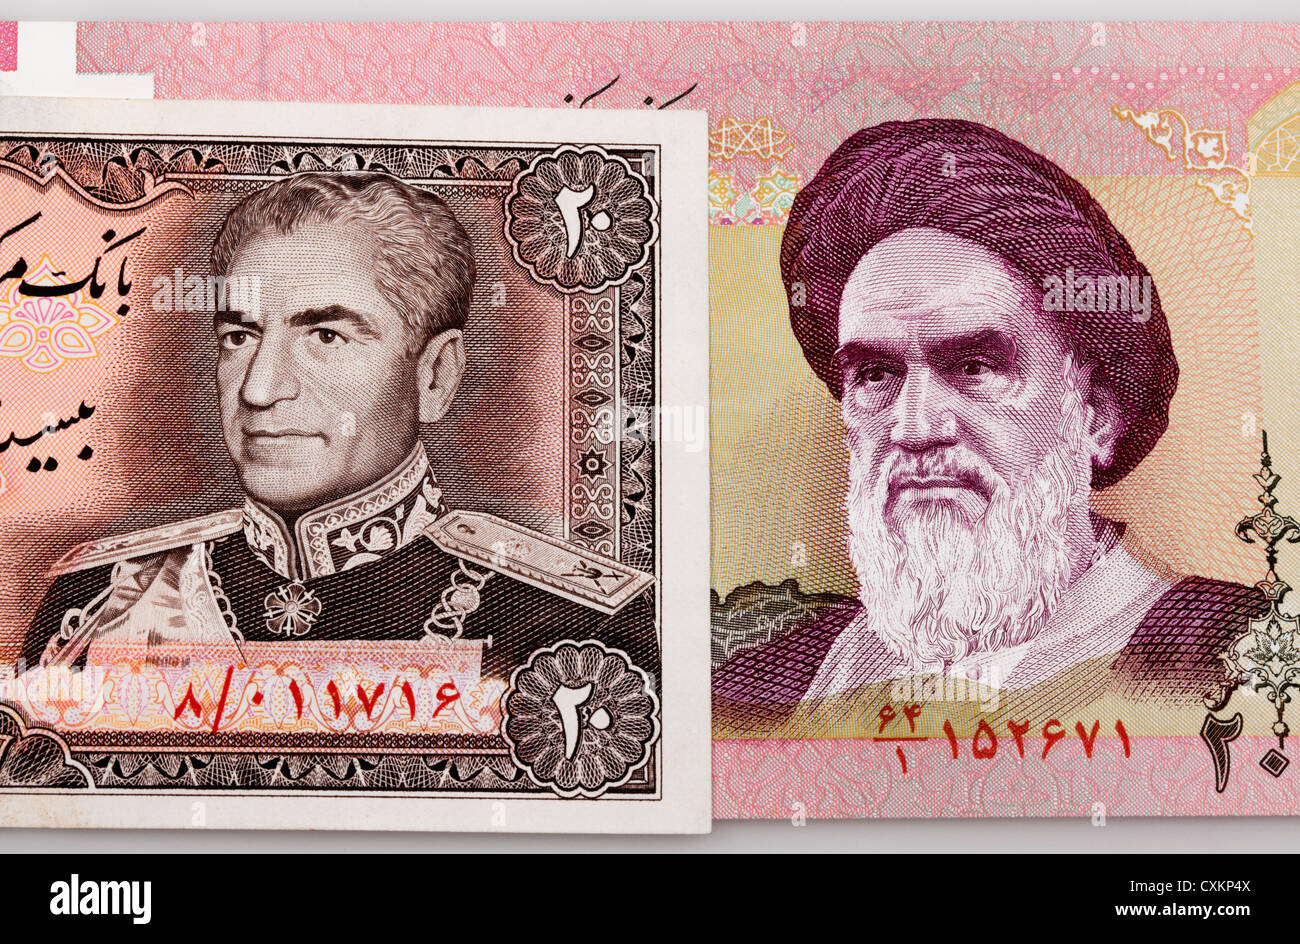 historic bank notes from Iran with portraits of Shah Mohammad Reza Pahlavi and Ruhollah Khomeini, - Stock Image